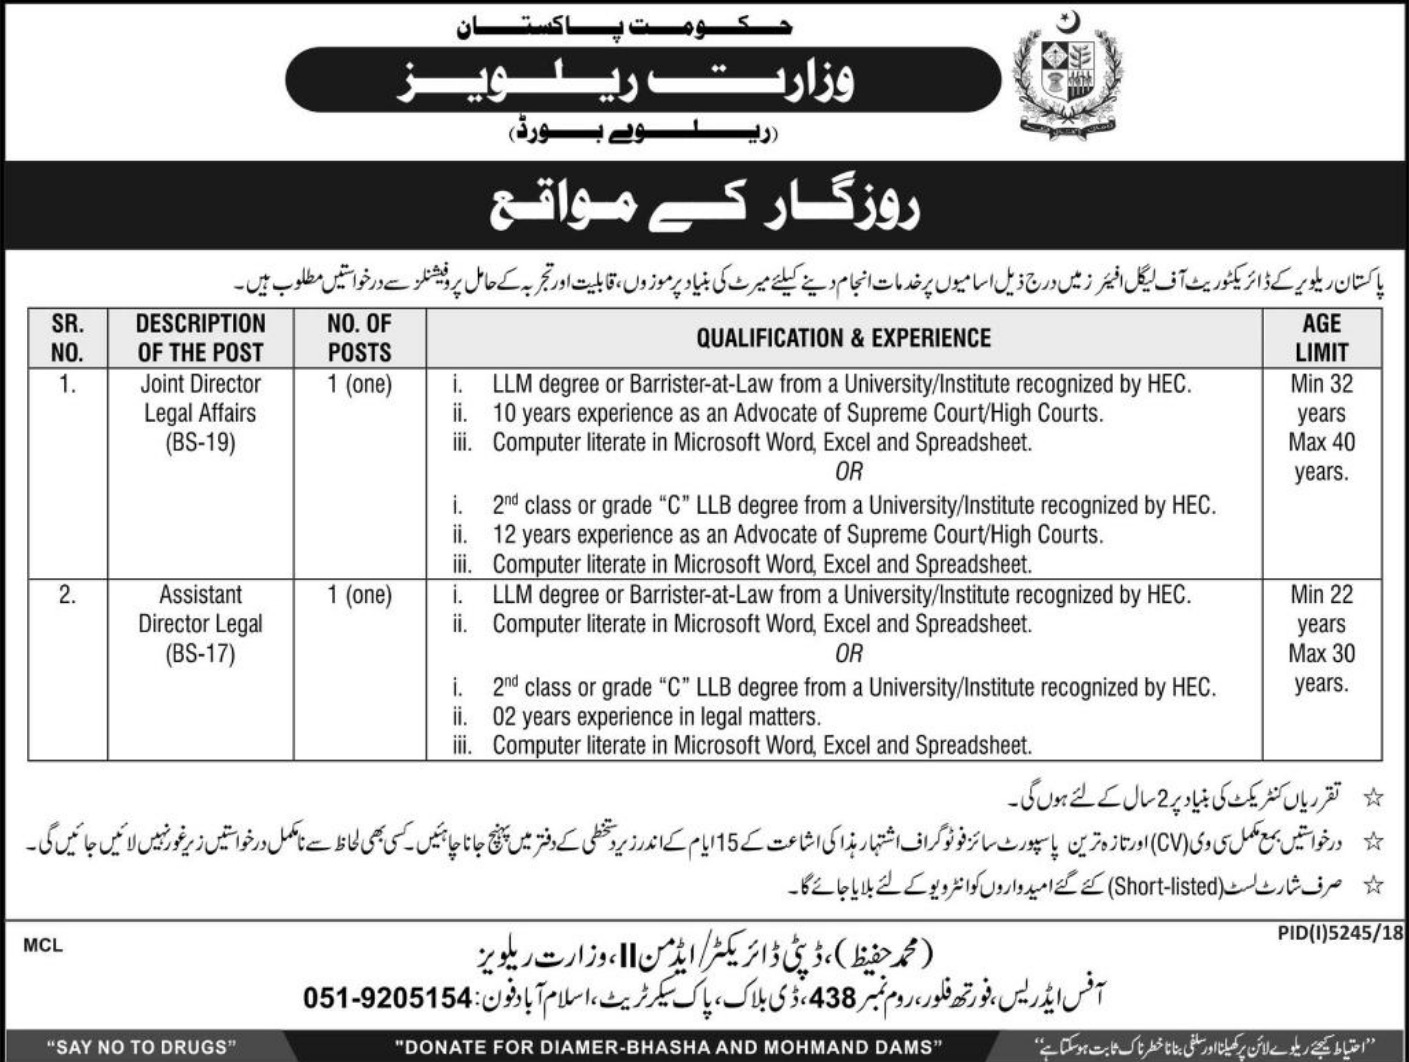 Ministry of Railways Jobs 2019 Government of Pakistan